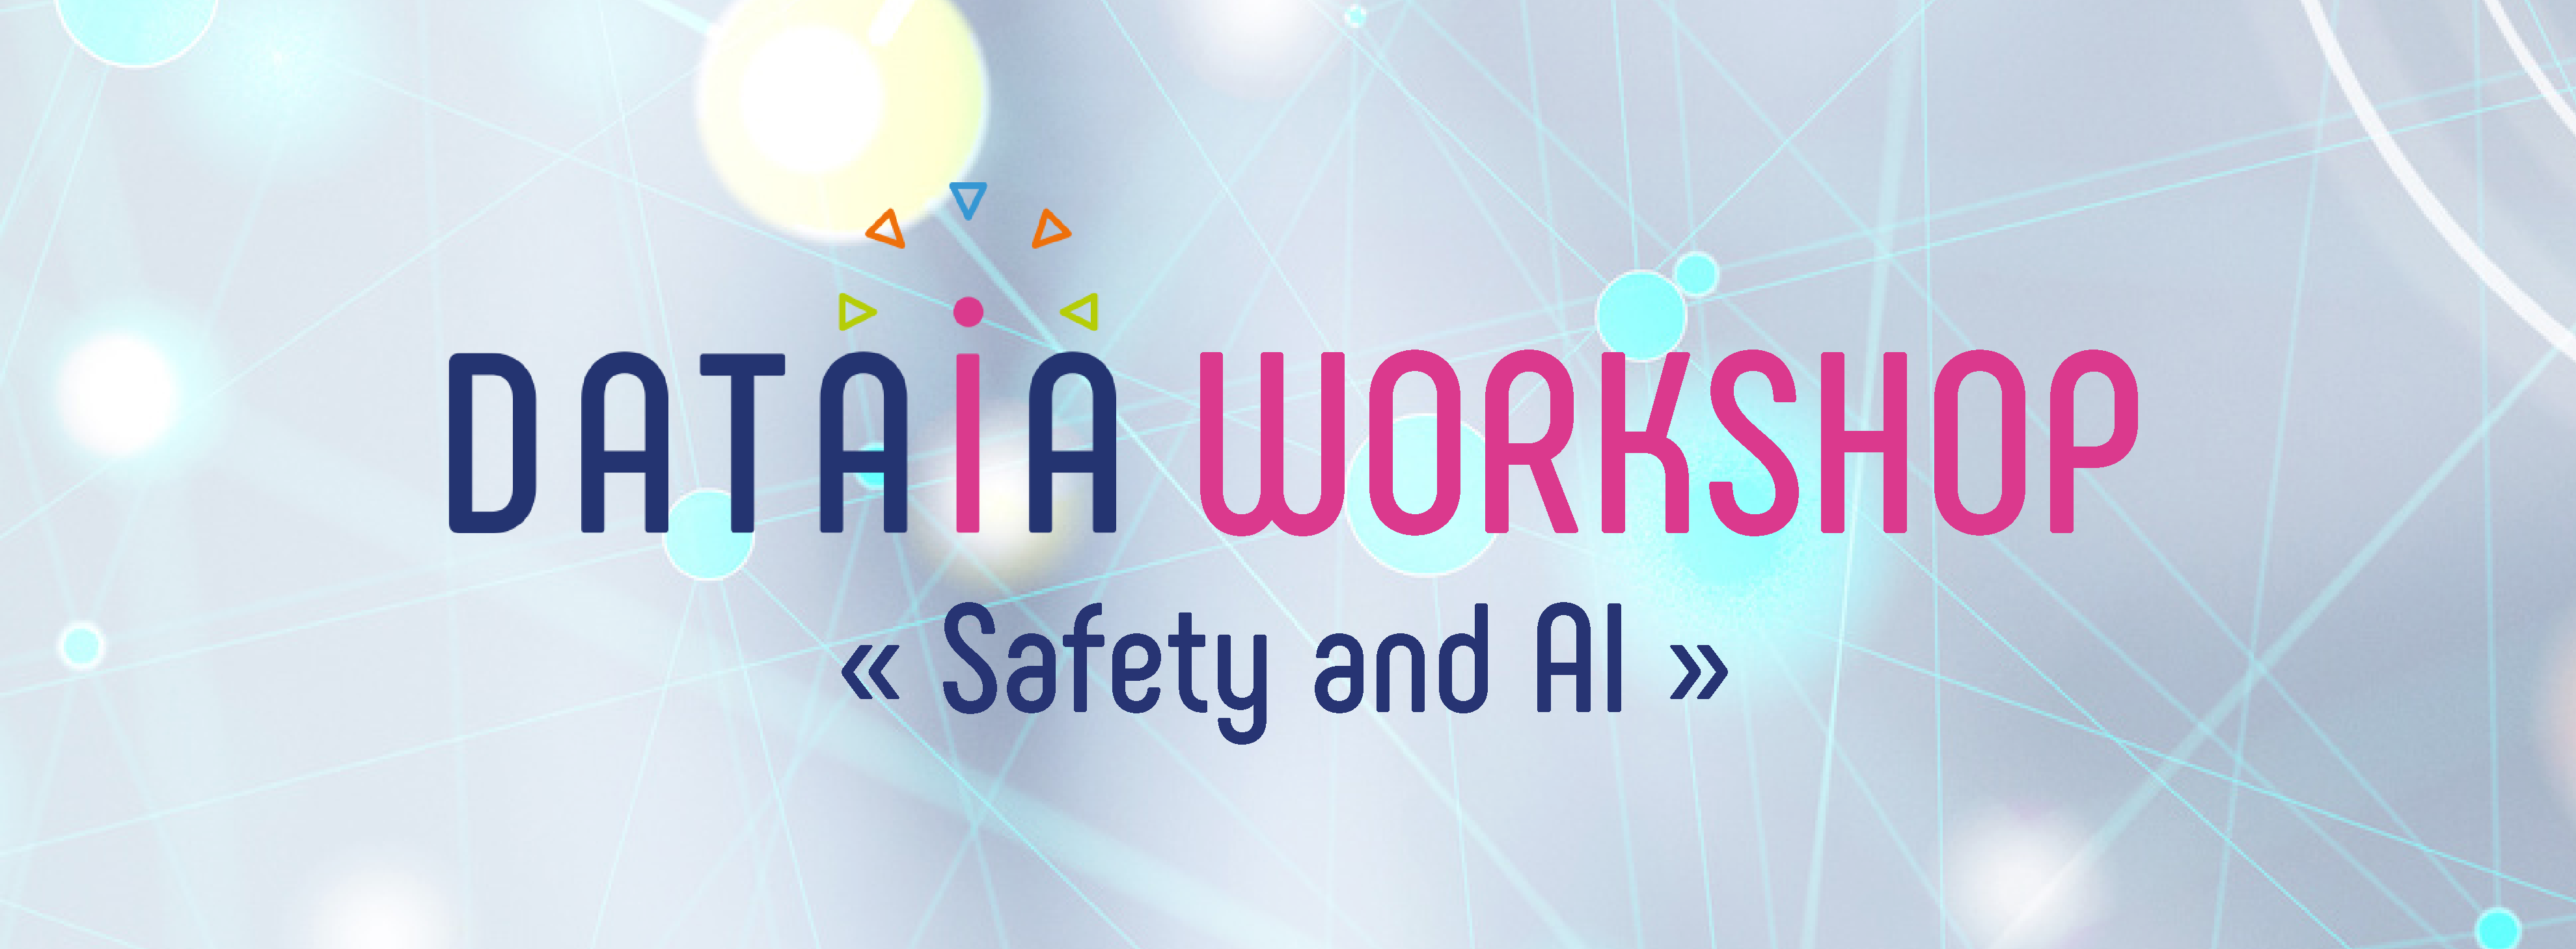 DATAIA Workshop « Safety & AI », le 23 septembre 2020